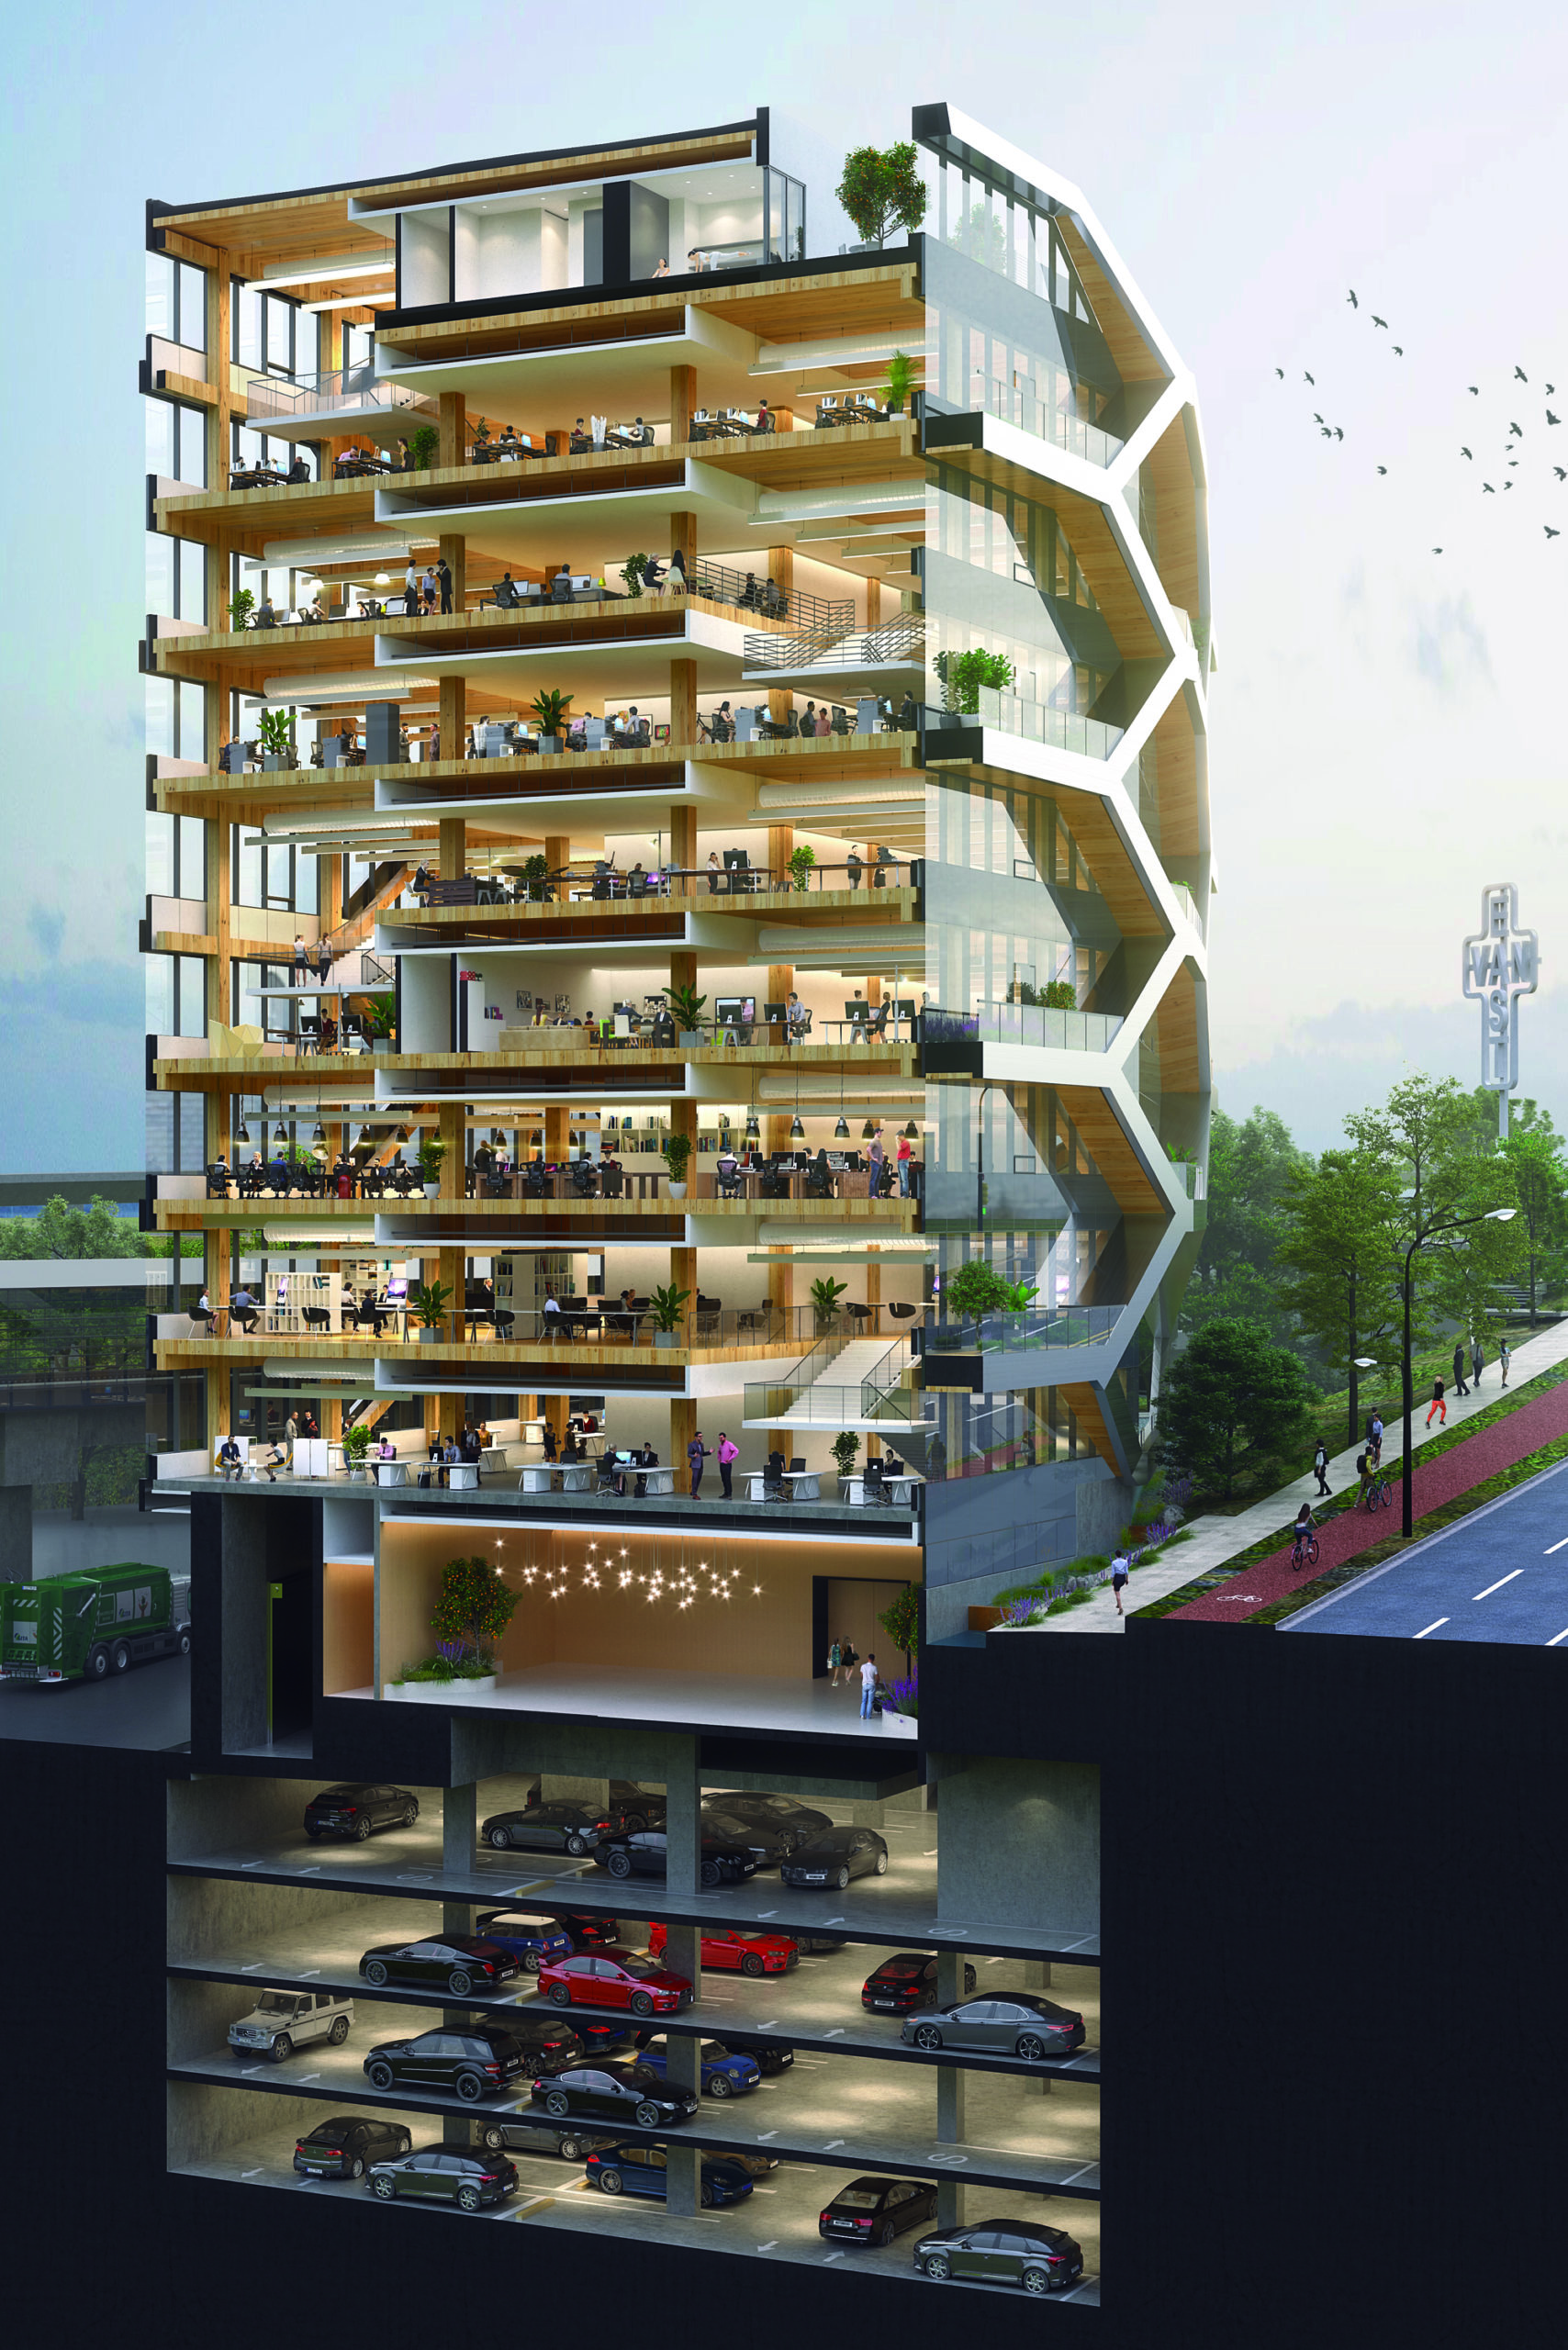 B.C. announced it will be funding a series of projects to build and research mass timber construction projects. One such project is 2150 Keith Drive, a 10-storey tall wood office building in Vancouver's False Creek Flats neighbourhood.